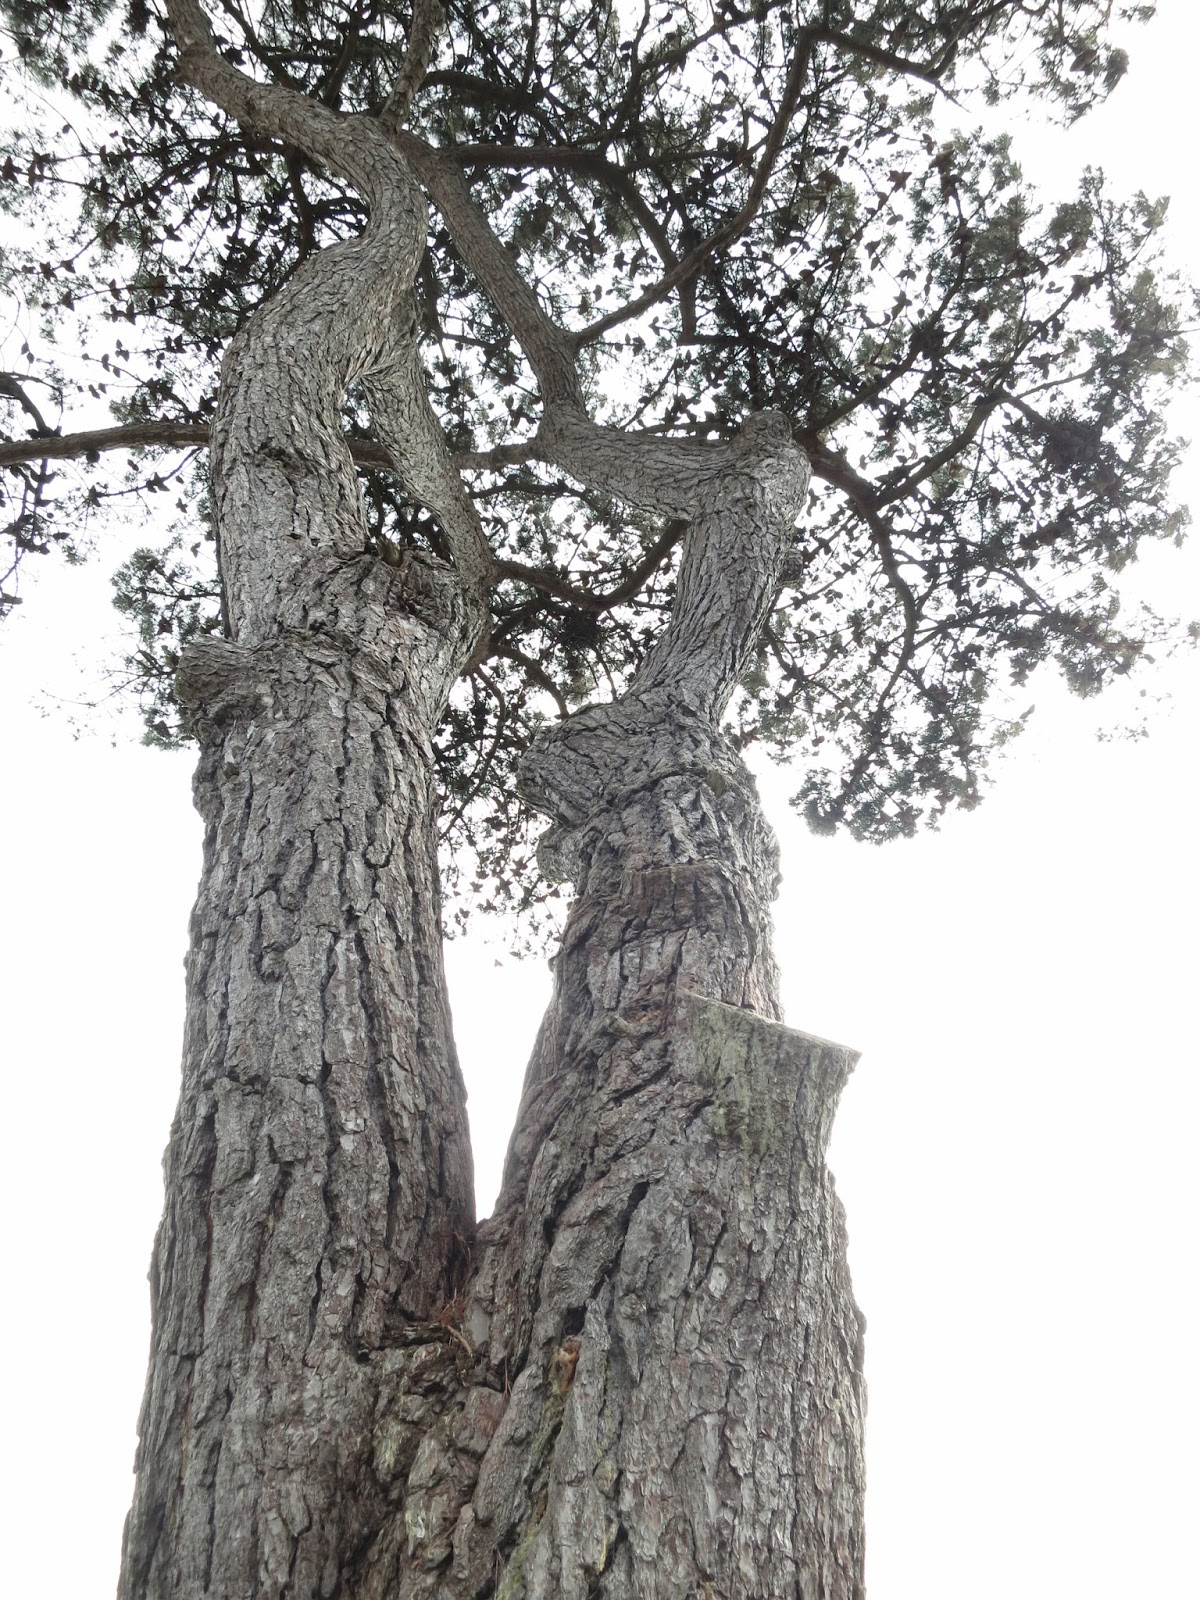 Divided trunk showing where branches have been lopped